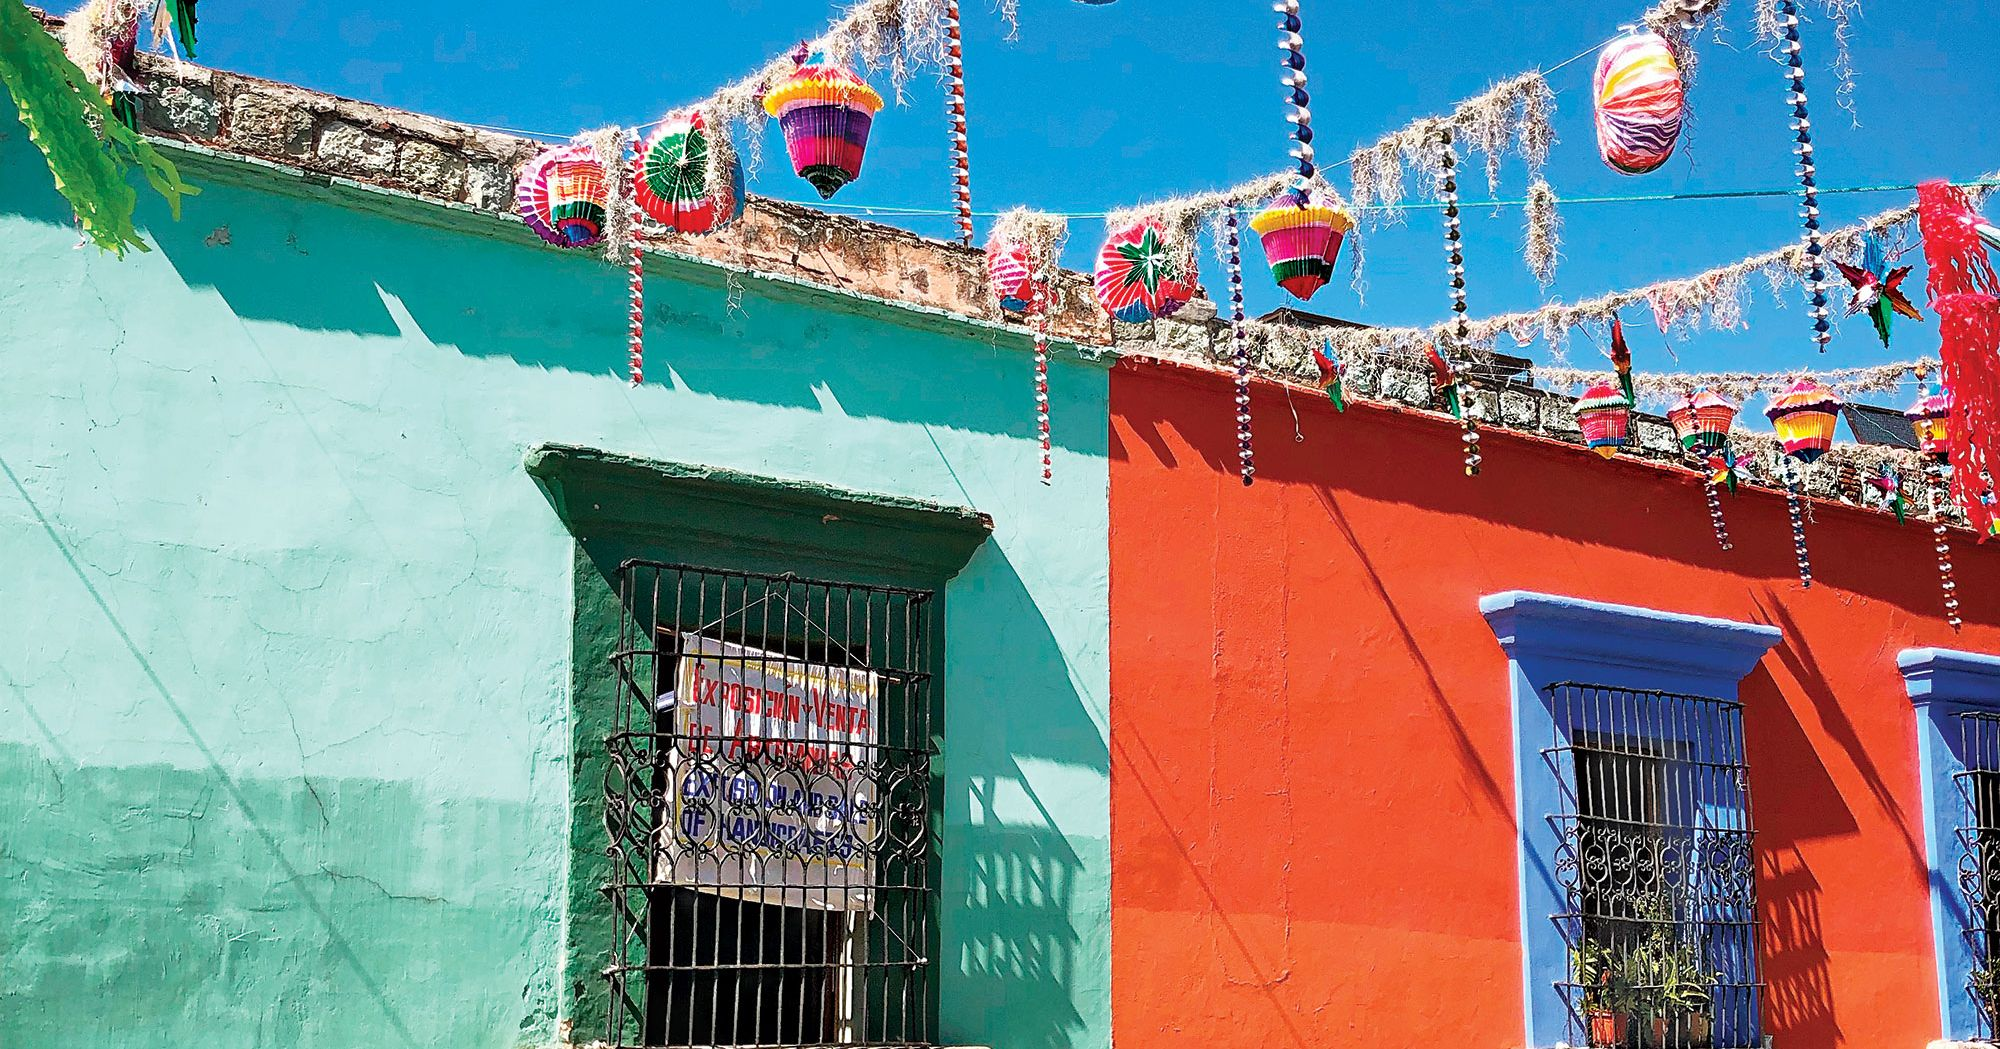 The Urbanist's Guide to Oaxaca